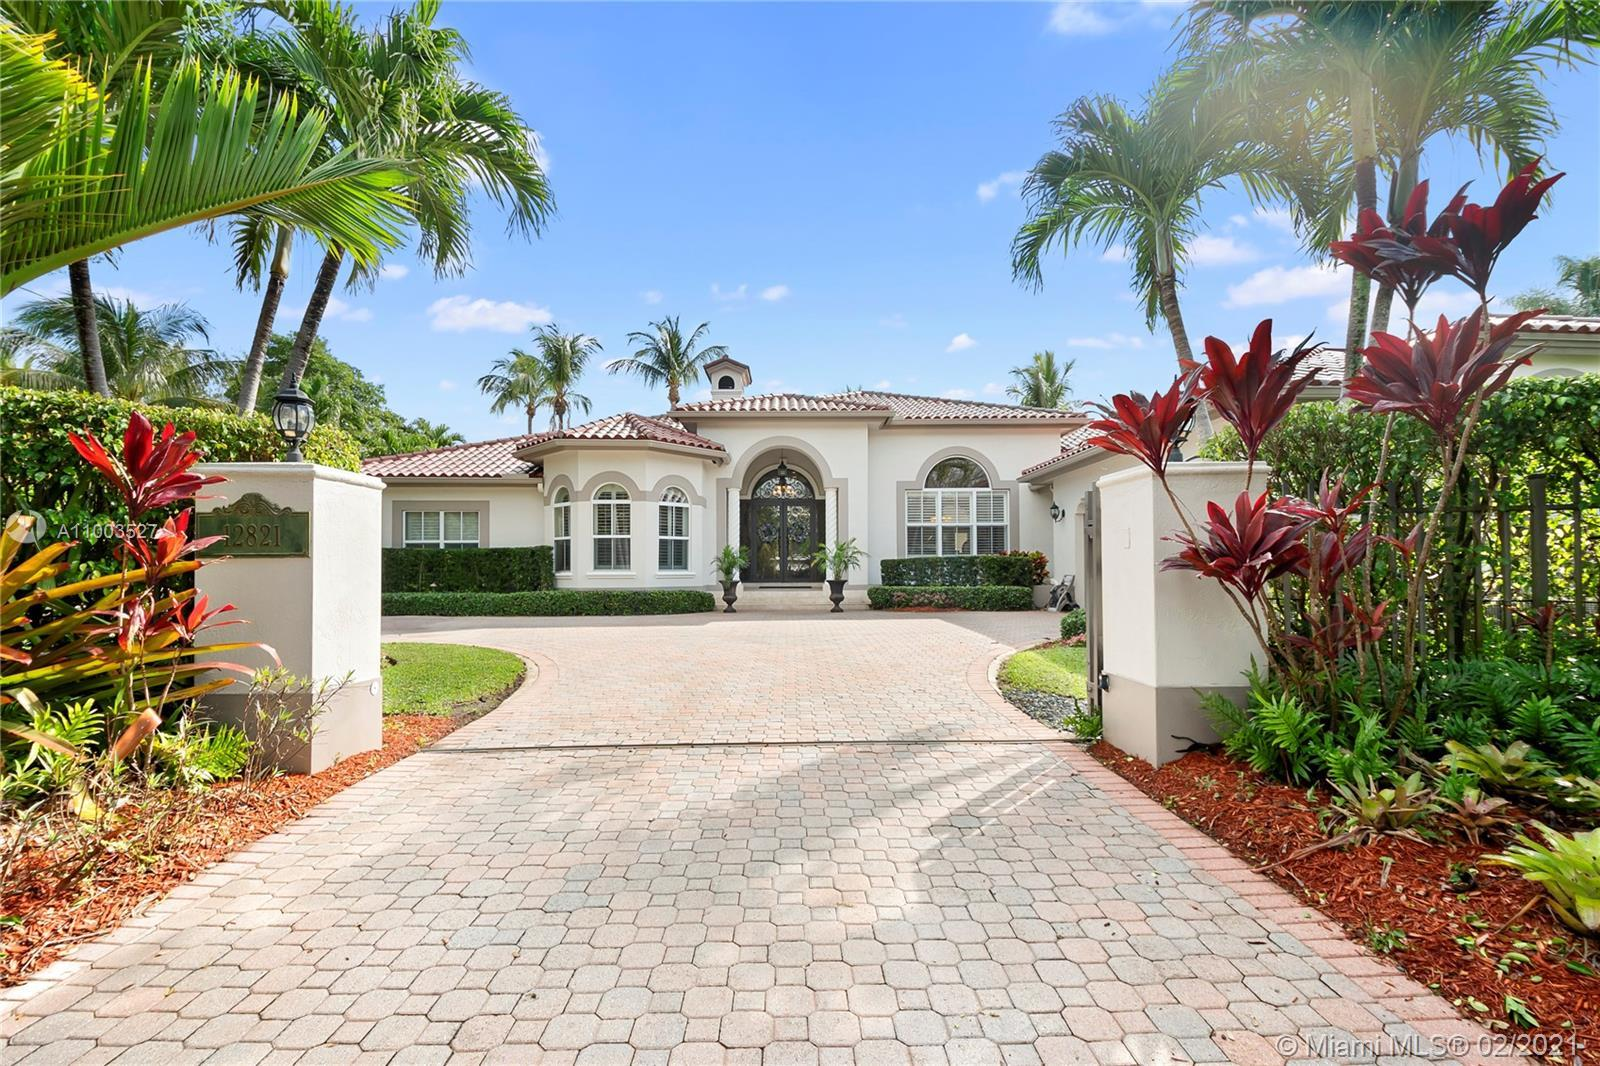 Pinecrest gated estate! This 5 bedroom, 4 bath home has it all---impact windows and doors, high ceil